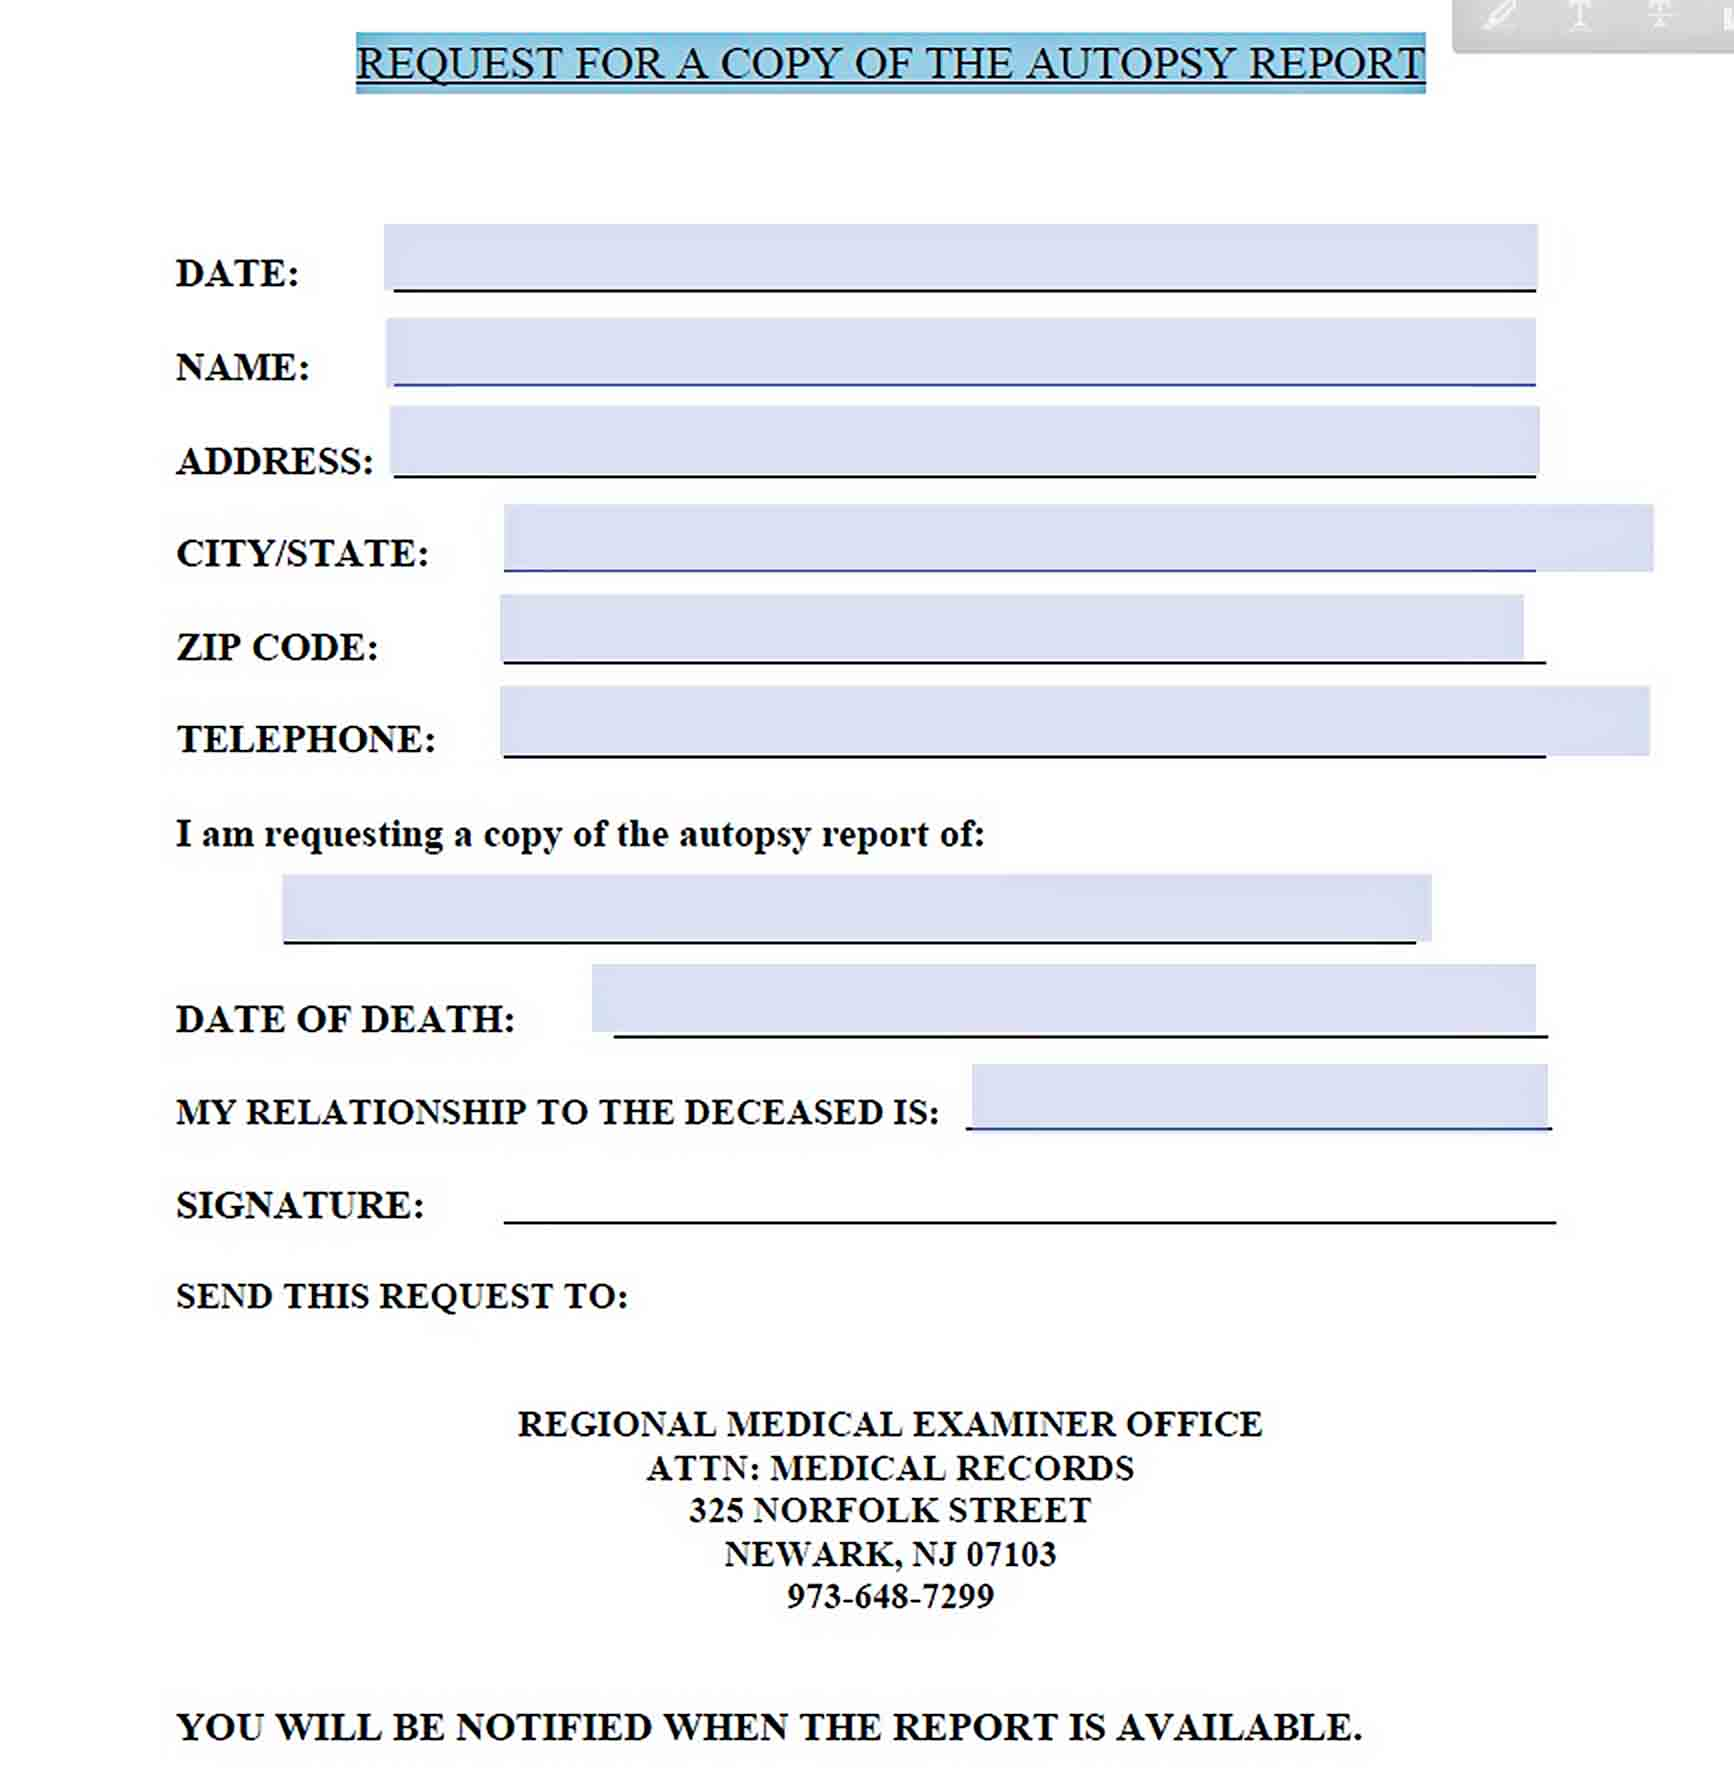 Templates Request for Autopsy Report